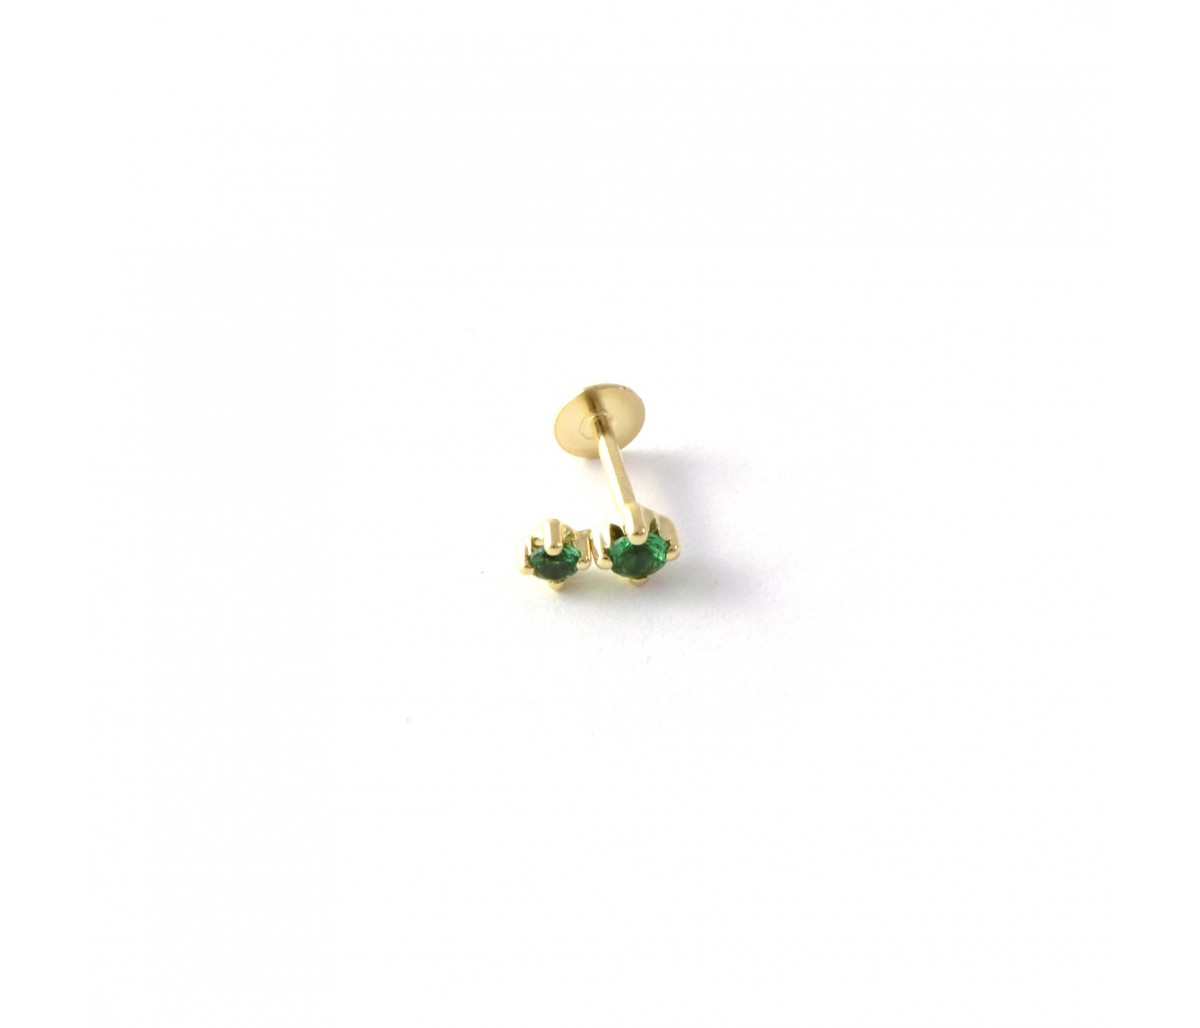 Green Tami 18k gold piercing